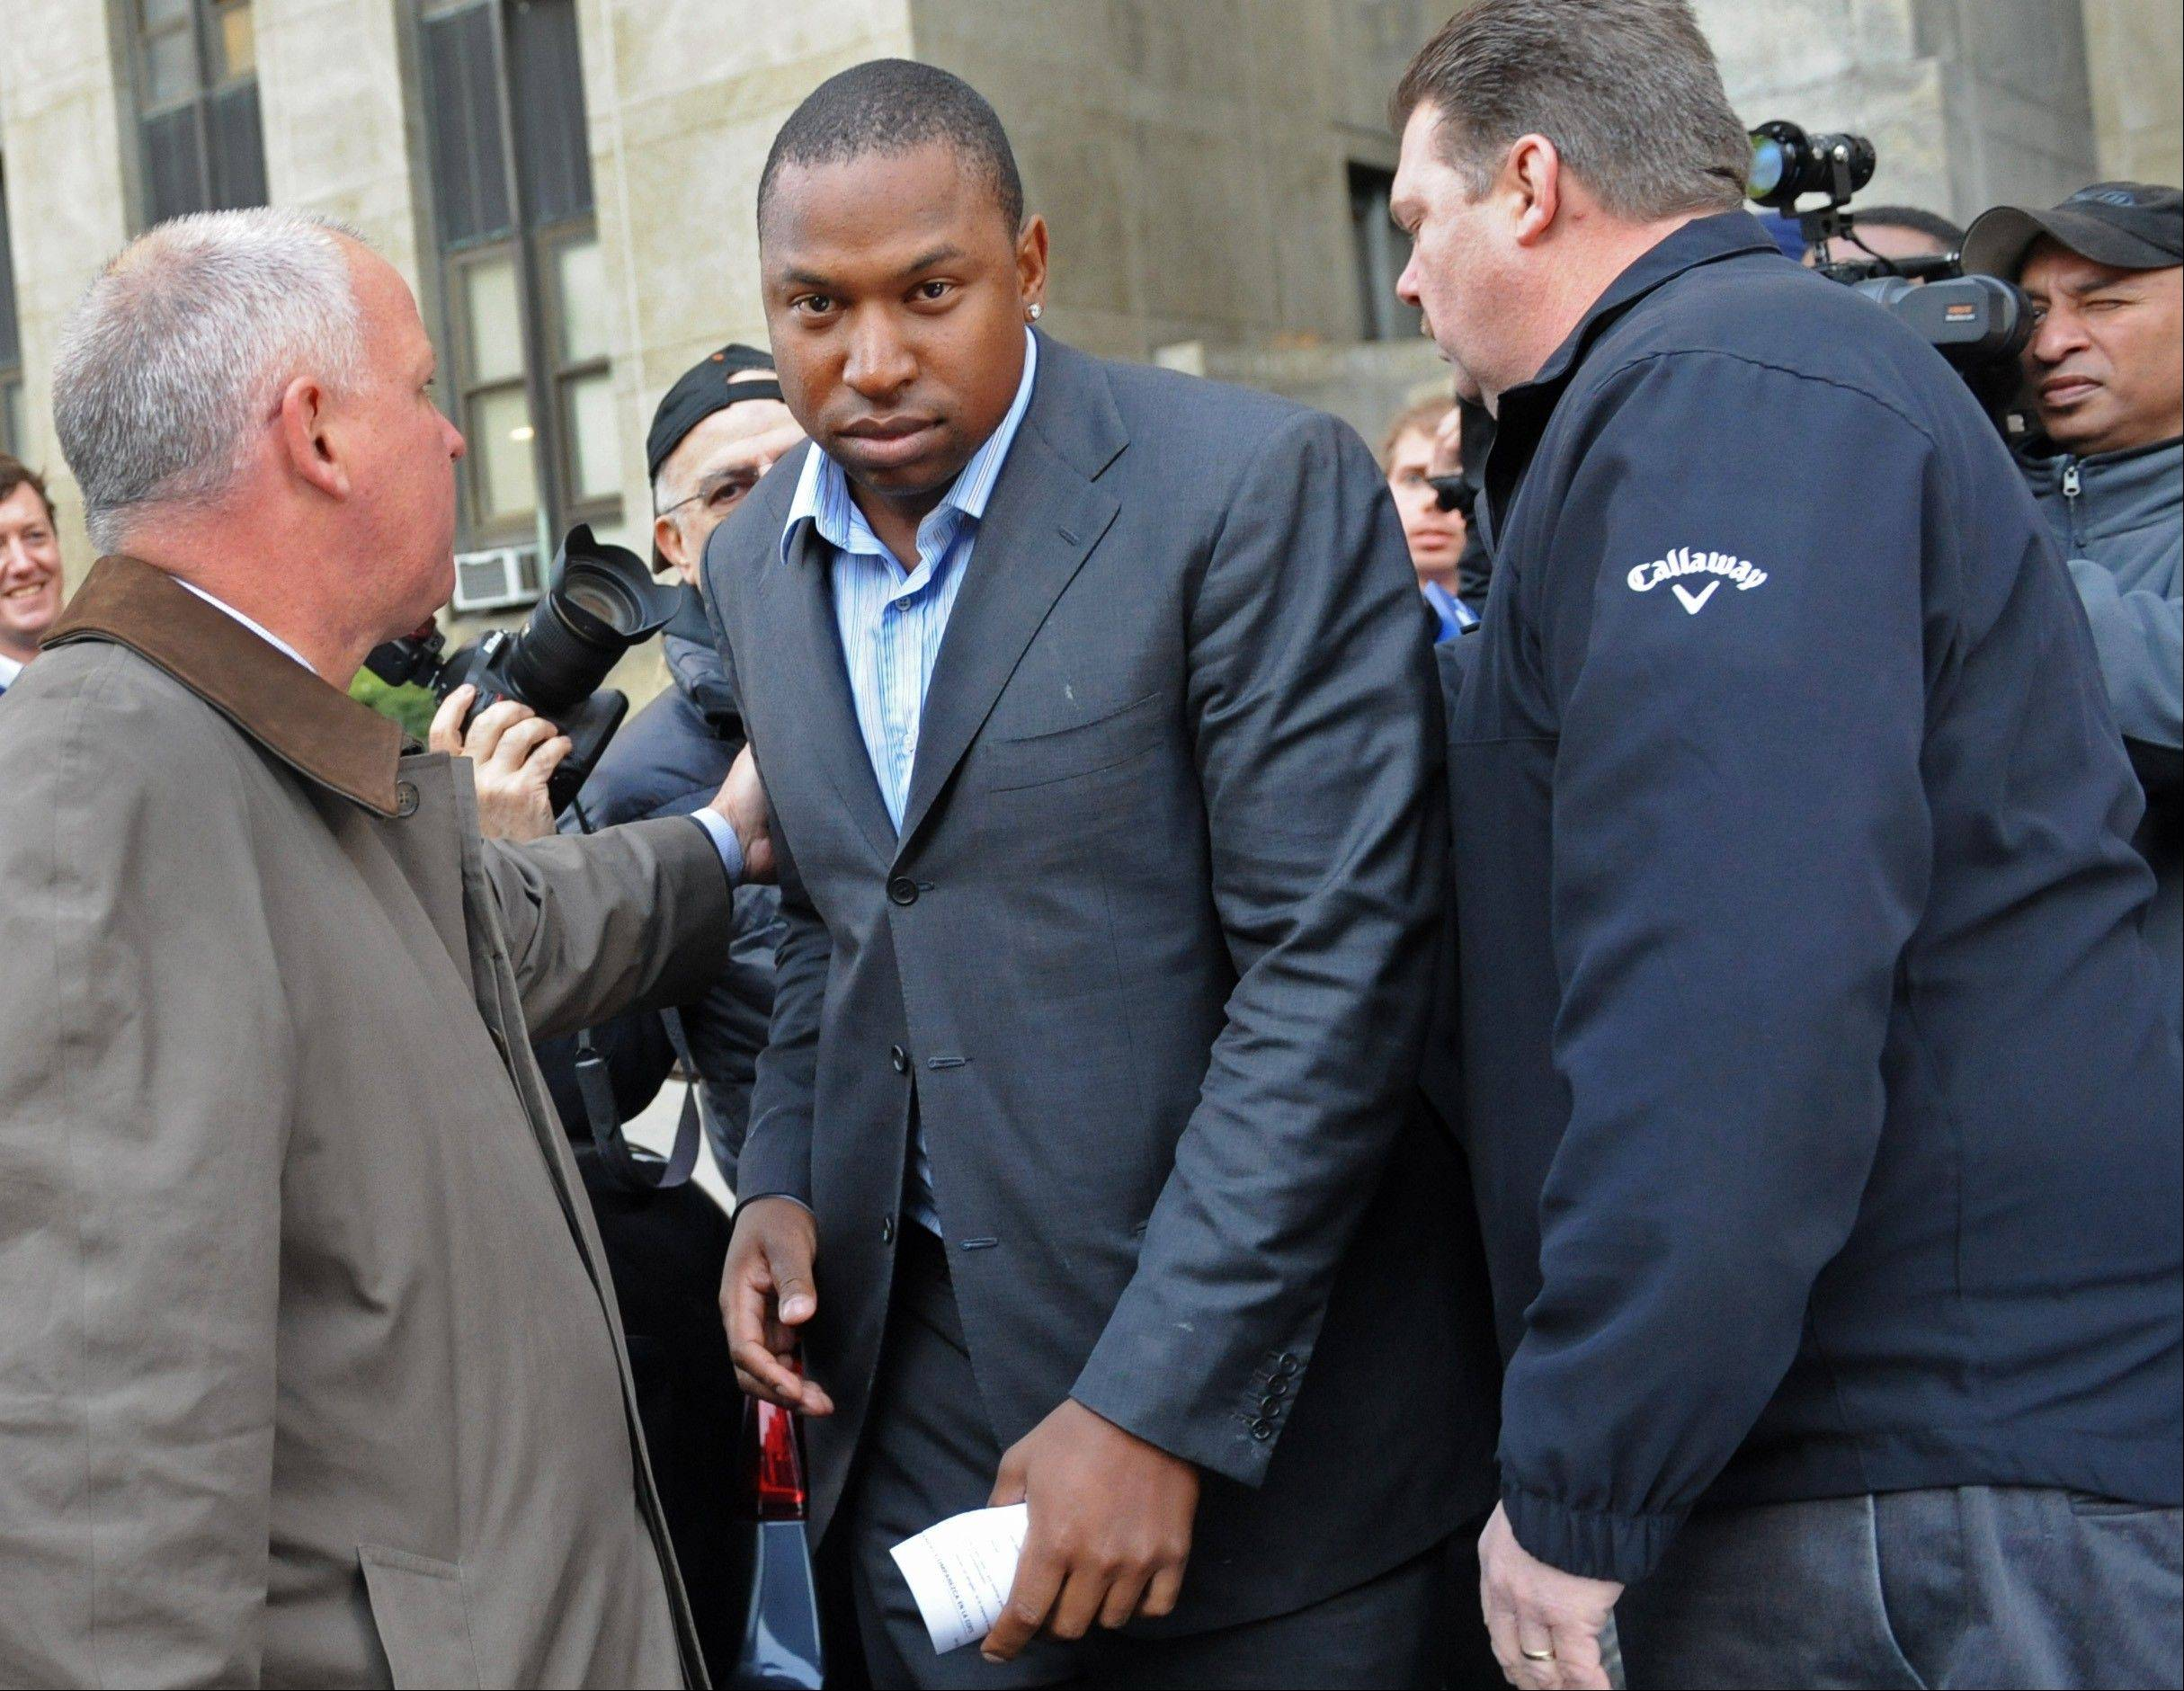 Detroit Tigers left fielder Delmon Young, center, exits Manhattan criminal court after posting bail on Friday in New York. Police say Young got into a fight with a group of men early Friday outside the team's midtown Manhattan hotel and yelled anti-Semitic epithets.